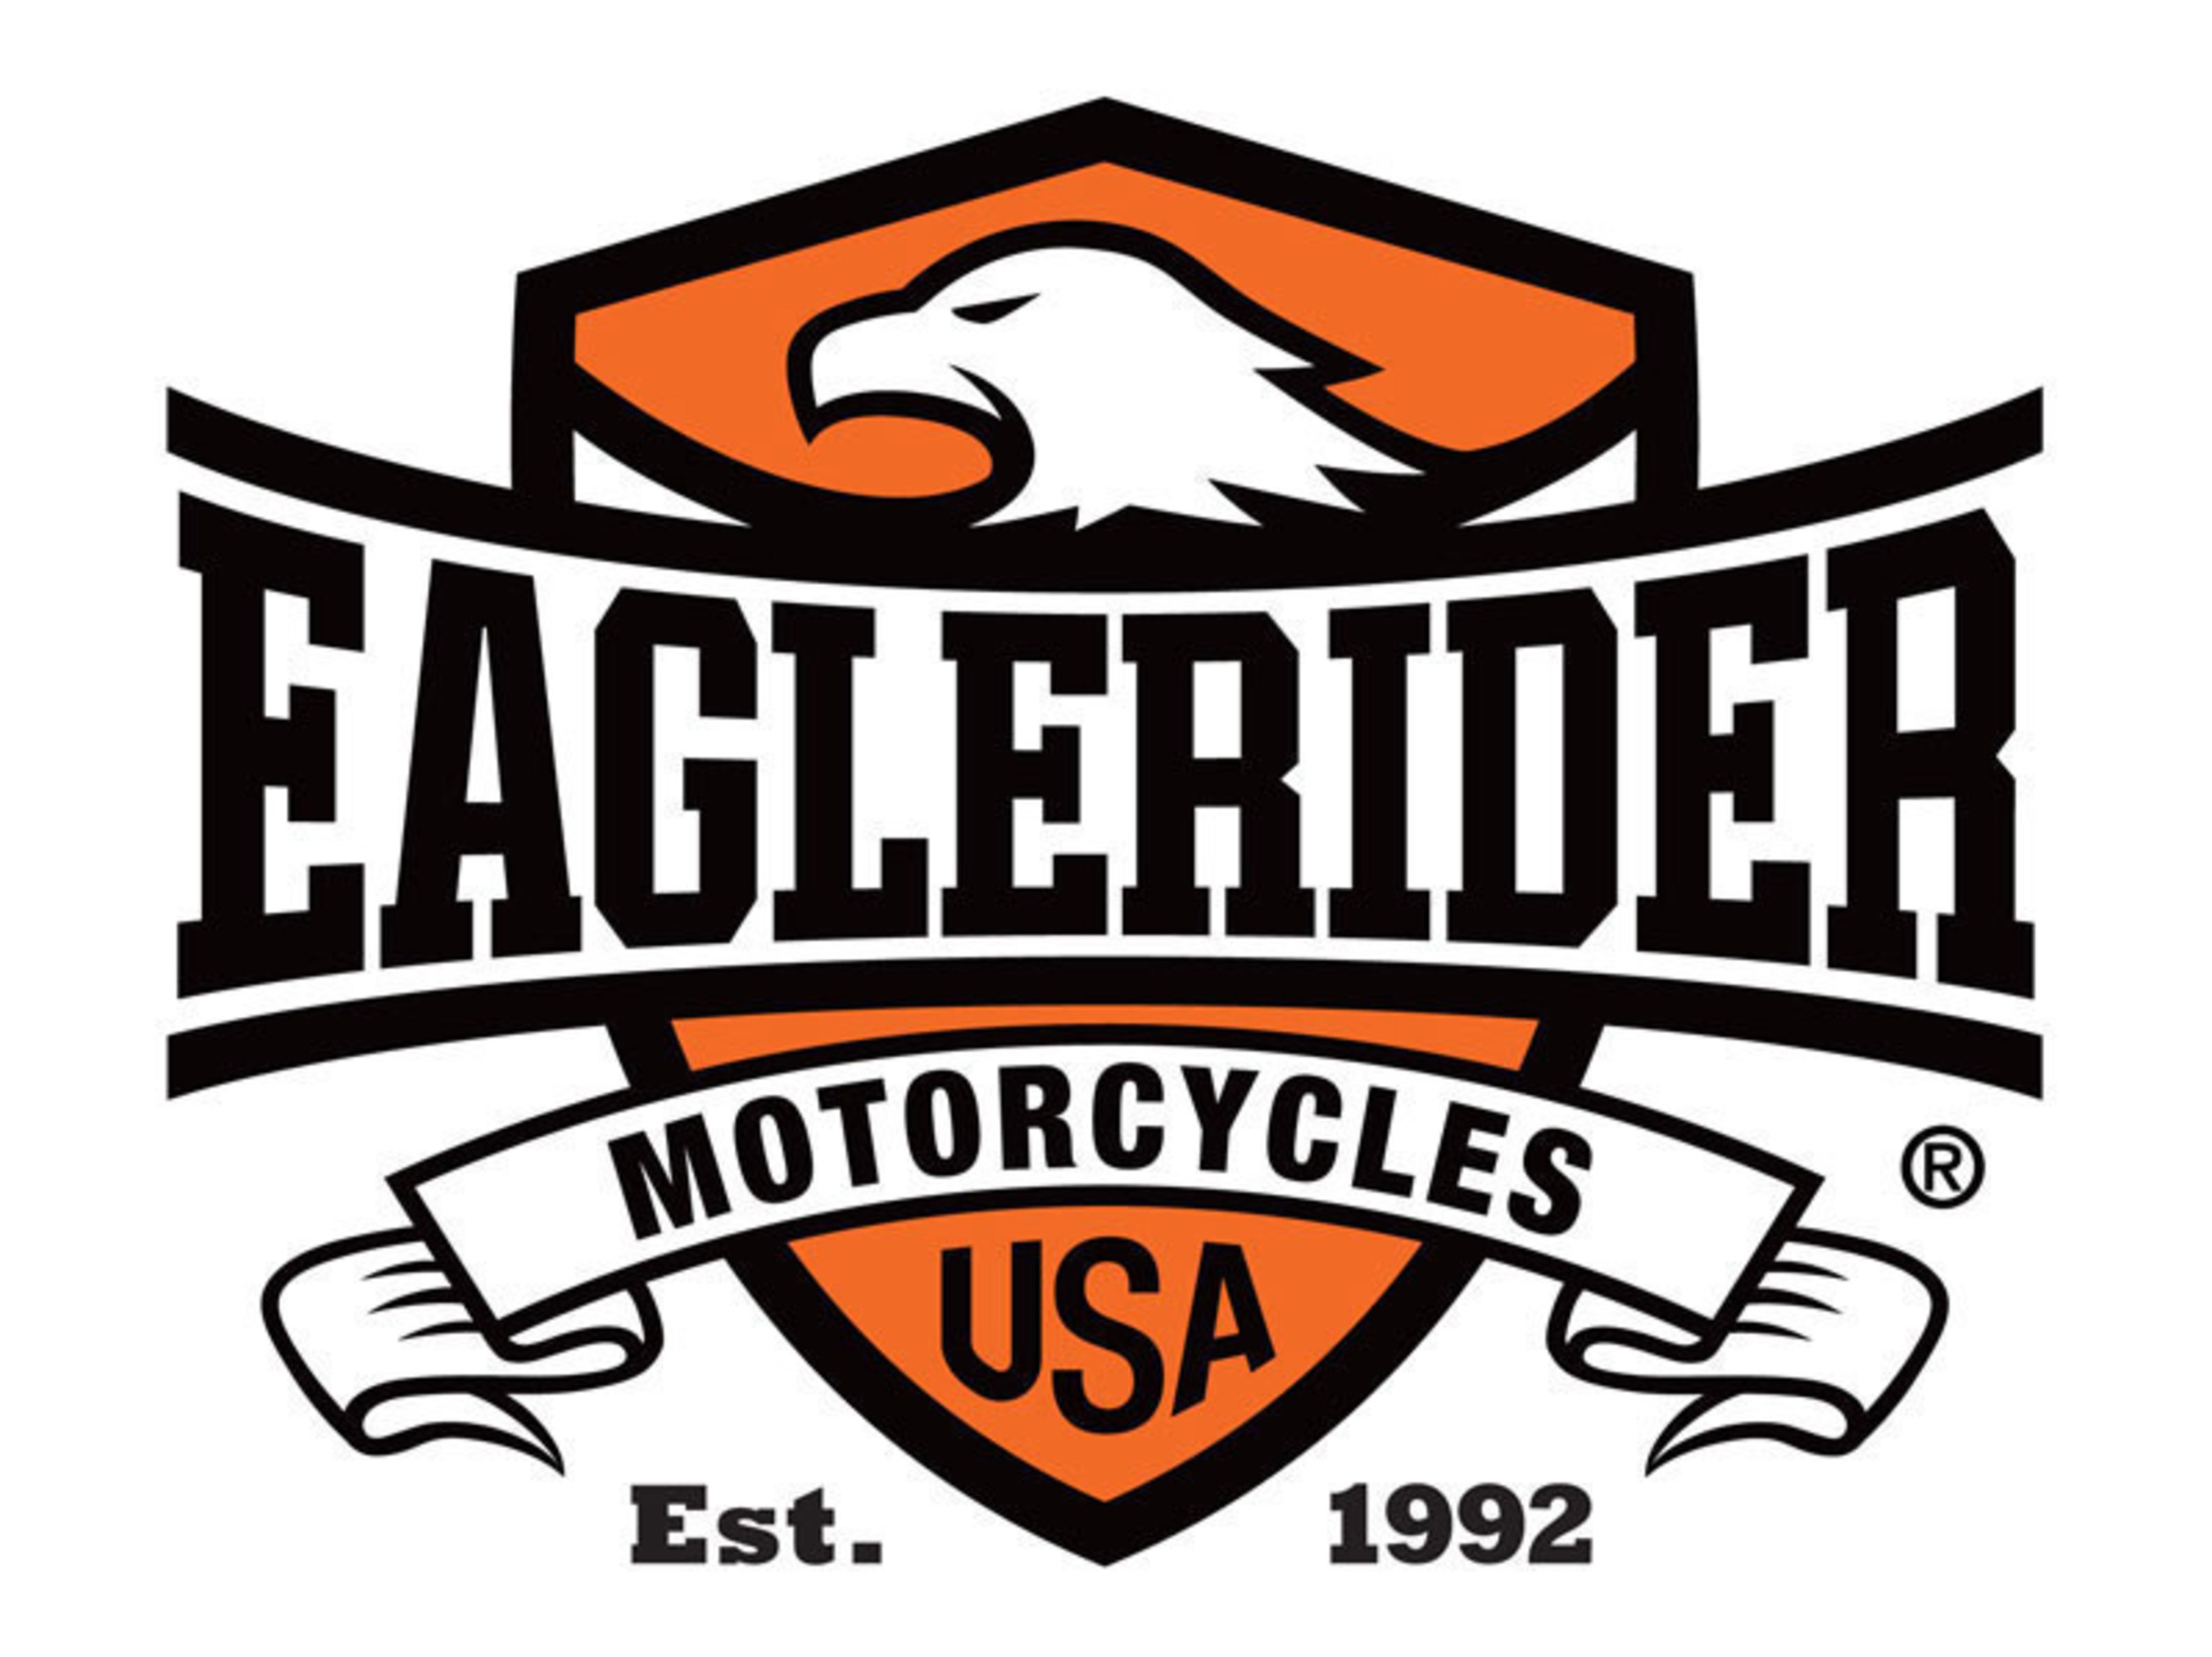 EagleRider, the world's innovator and leading provider of motorcycle experiences.